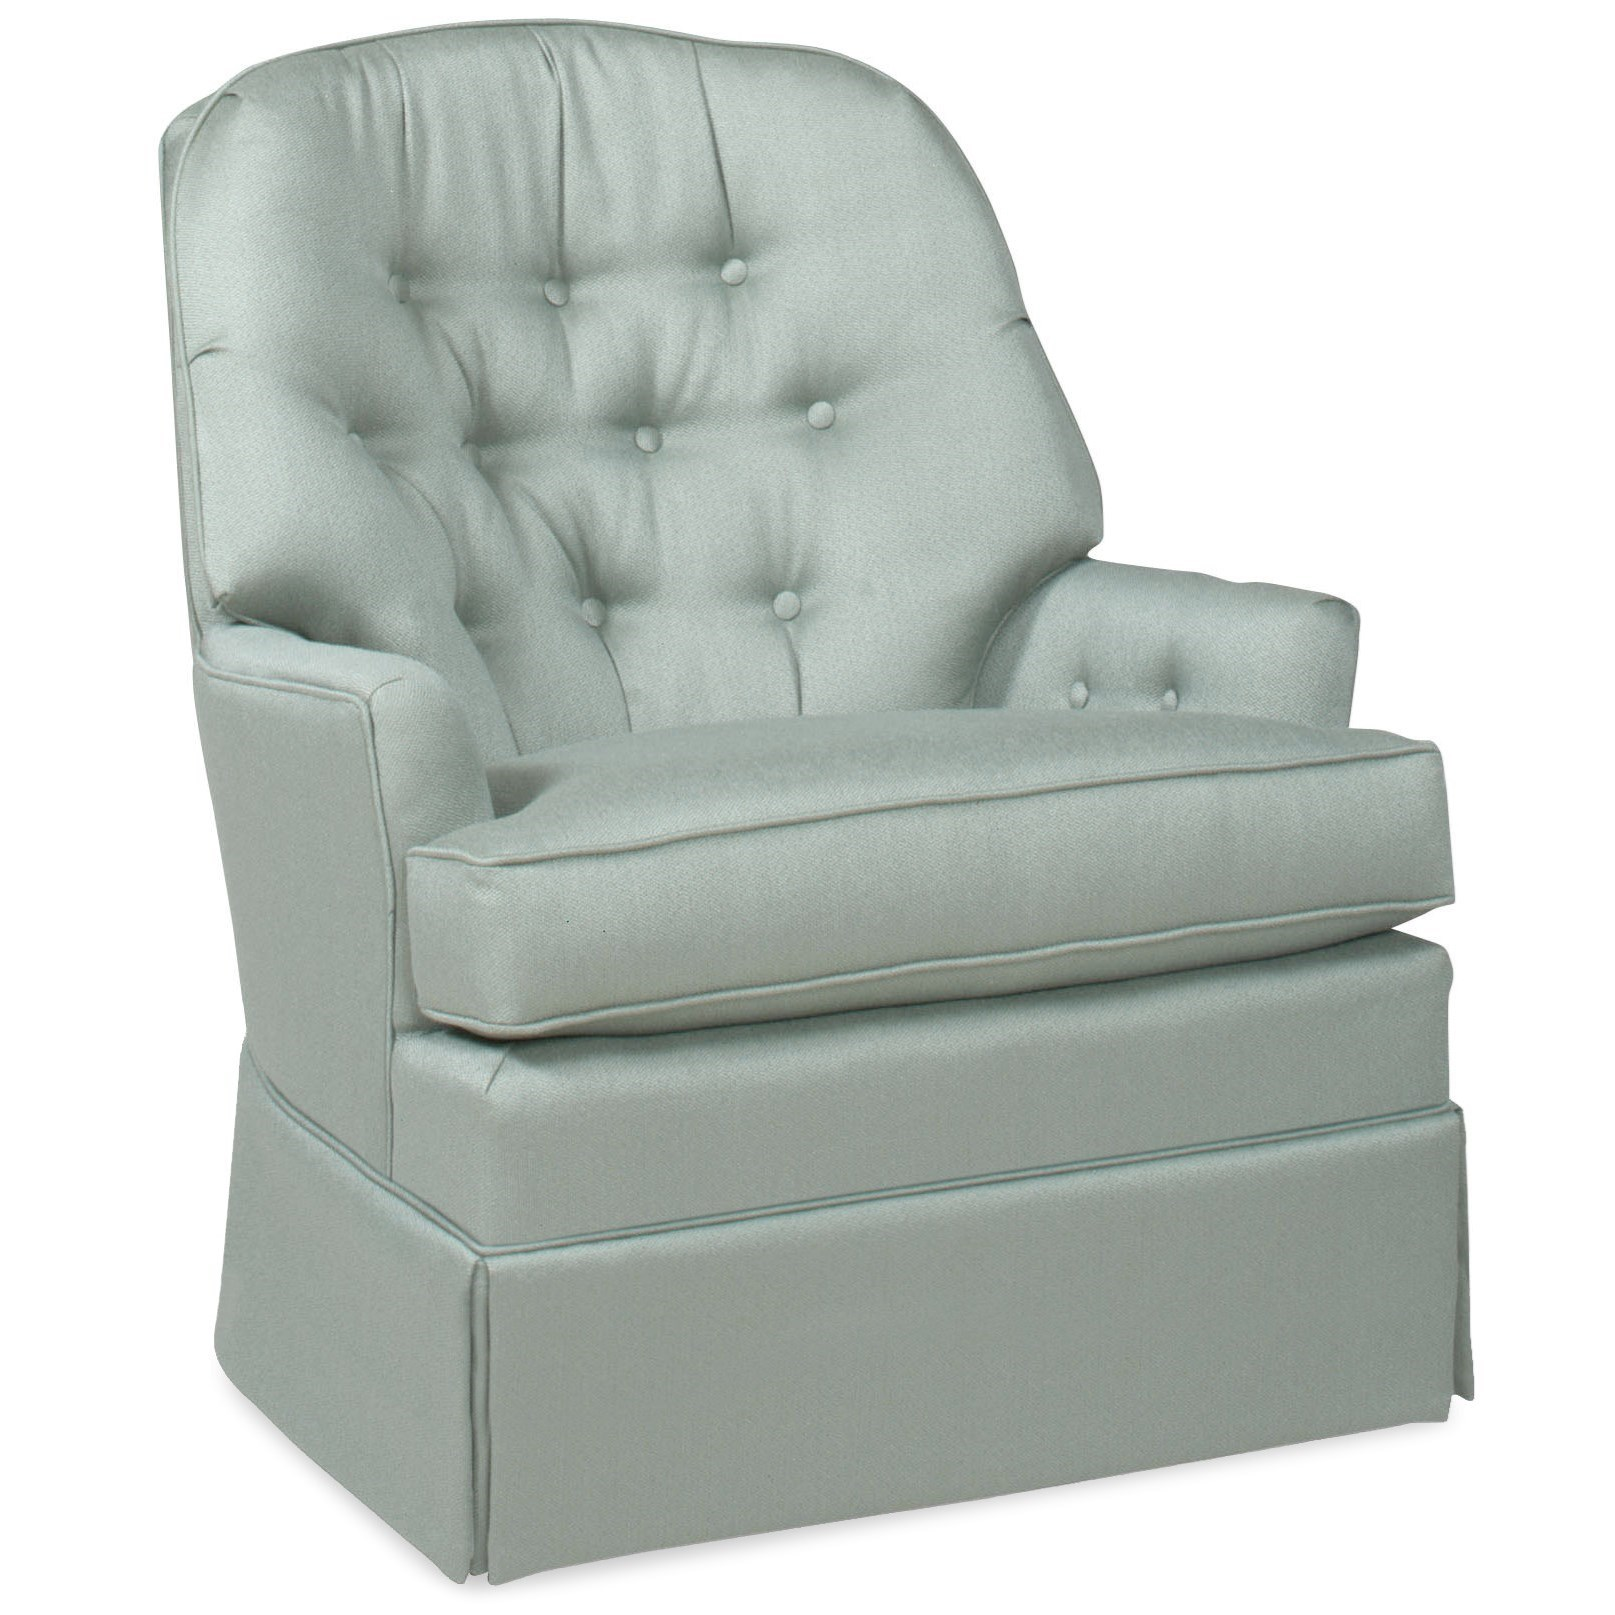 Accent Chairs Stationary Chair by Temple Furniture at Mueller Furniture